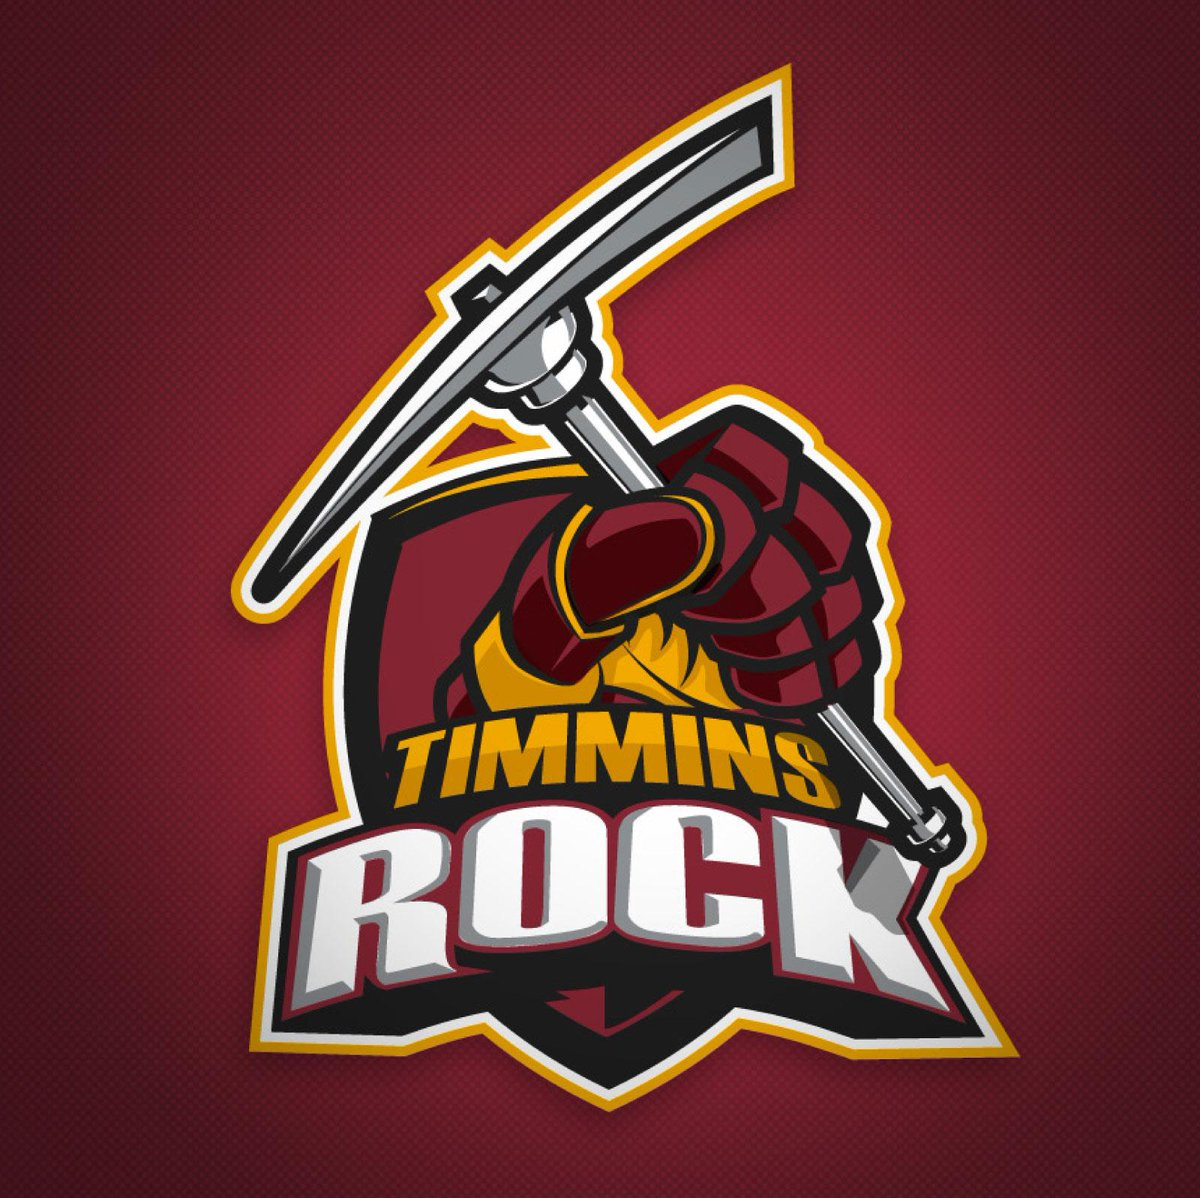 Very proud to be part of the returning NOJHL team to the City of Timmins. Welcome home Timmins Rock! http://t.co/s6X4BwBk36